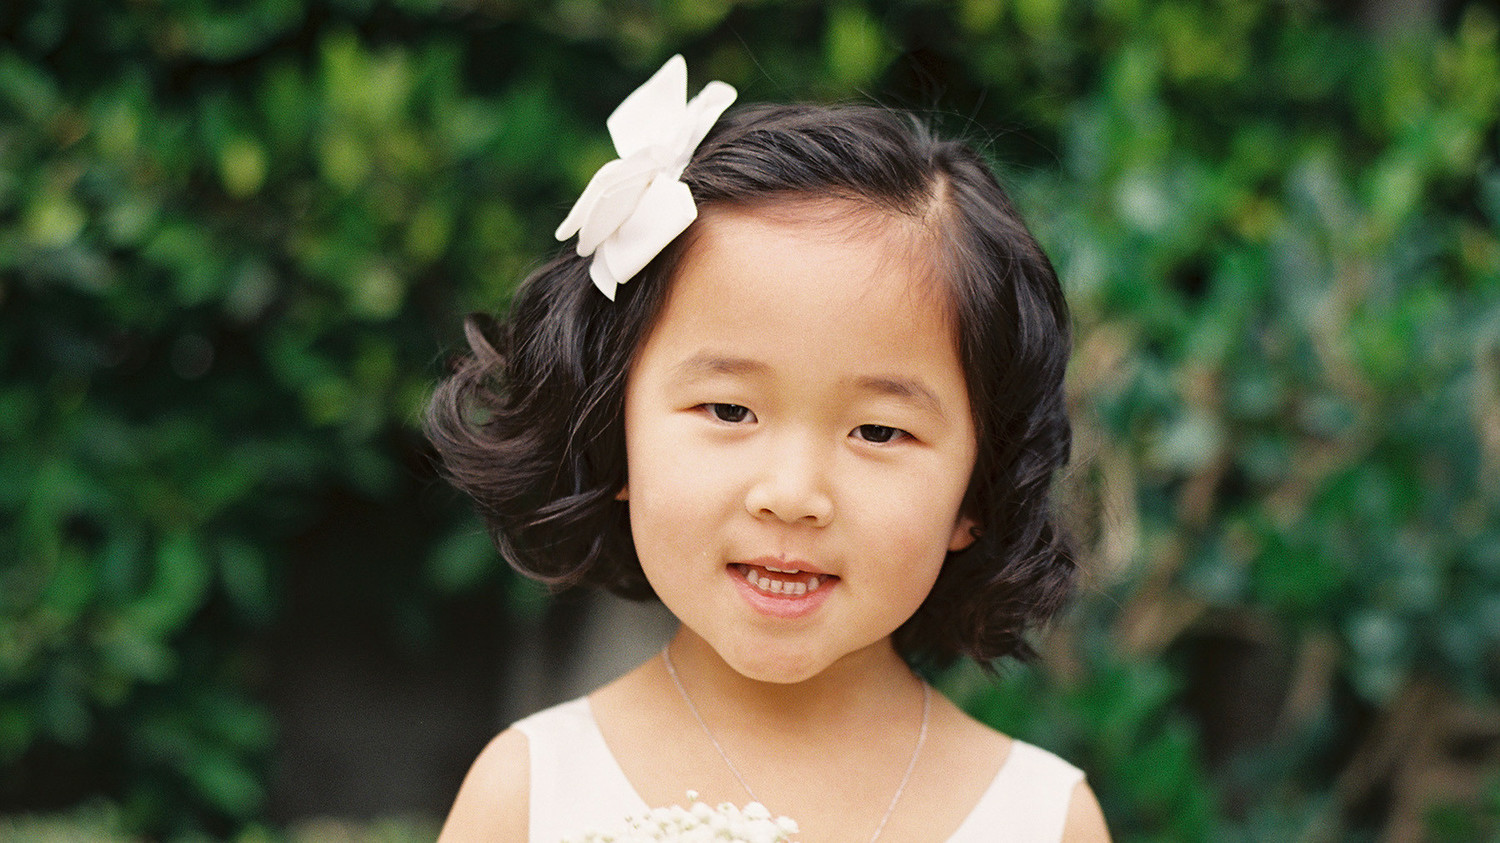 Adorable Hairstyle Ideas For Your Flower Girls